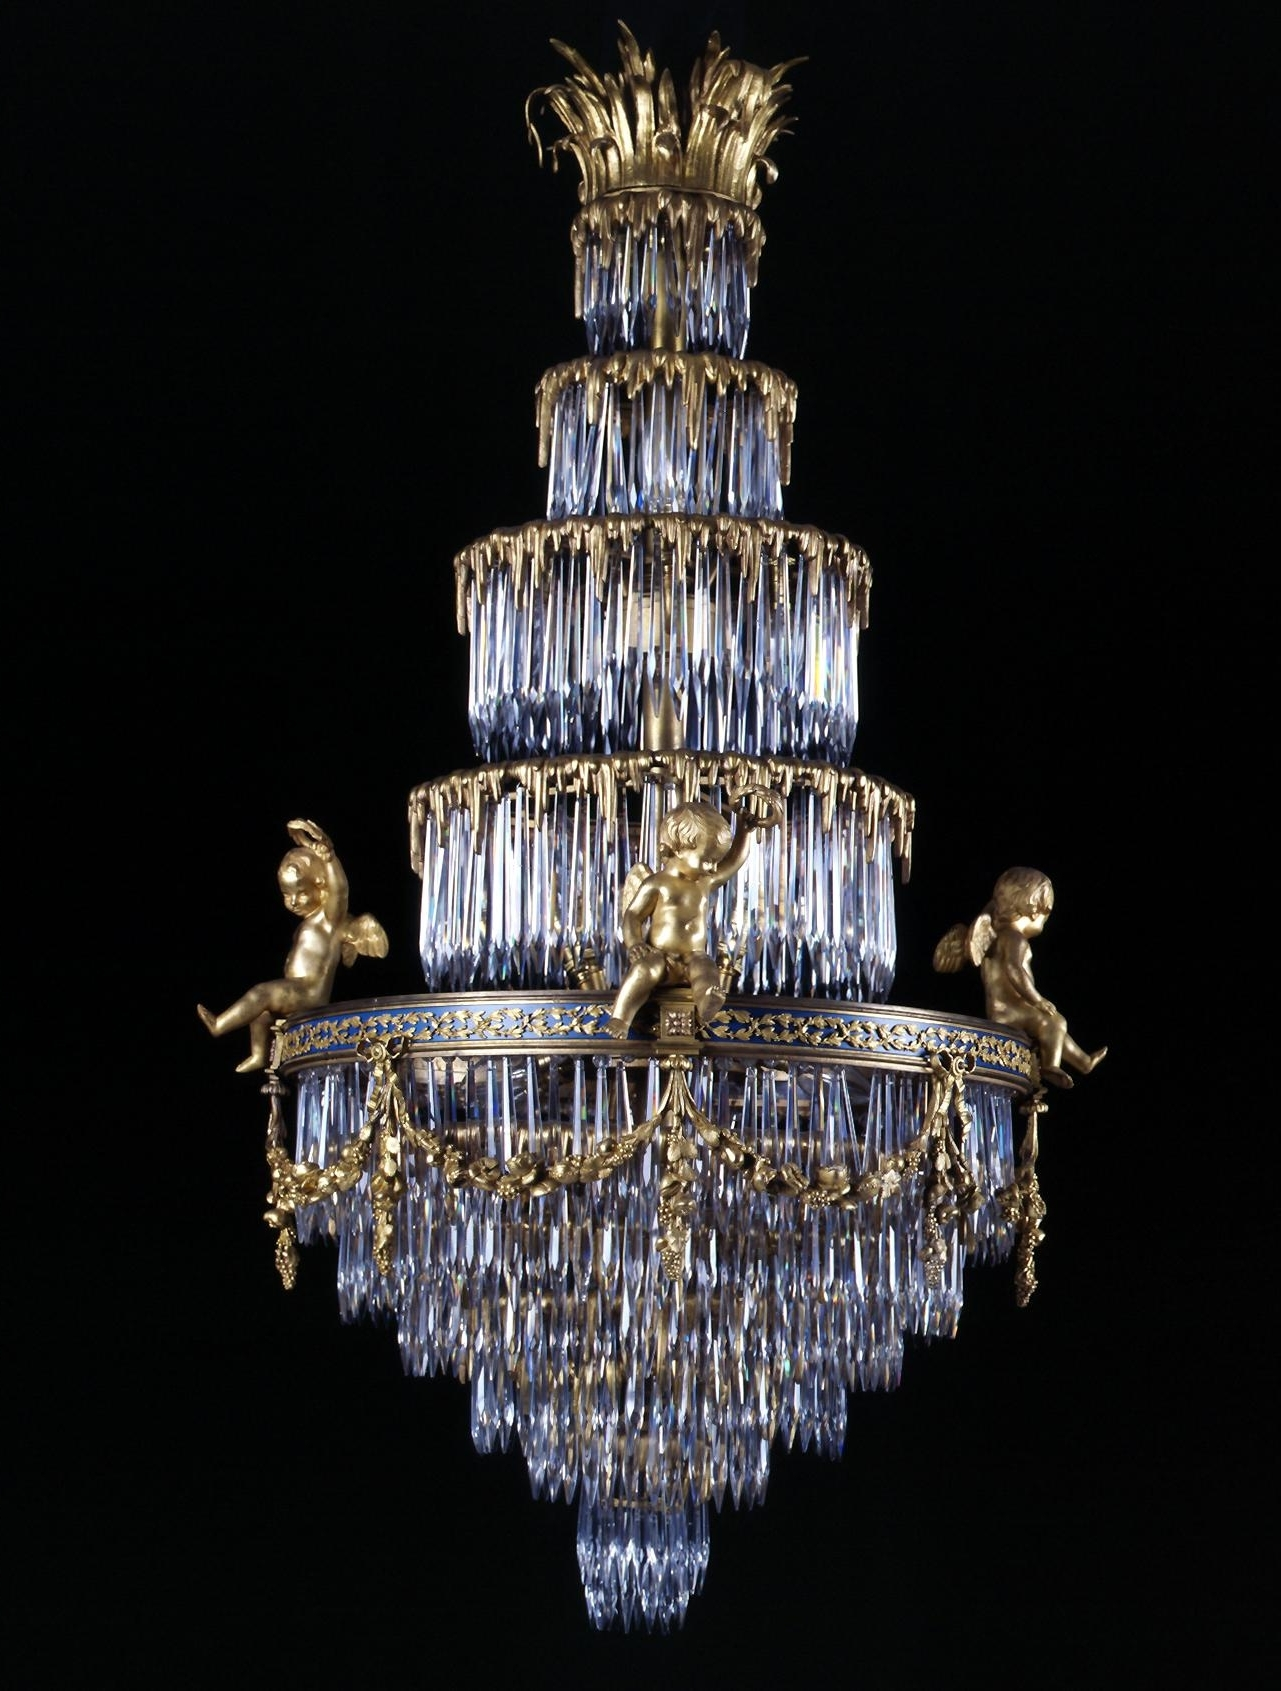 Latest Baccarat A Rare Crystal And Gilt Bronze Waterfall Chandelier French Inside Sparkly Chandeliers (View 8 of 20)